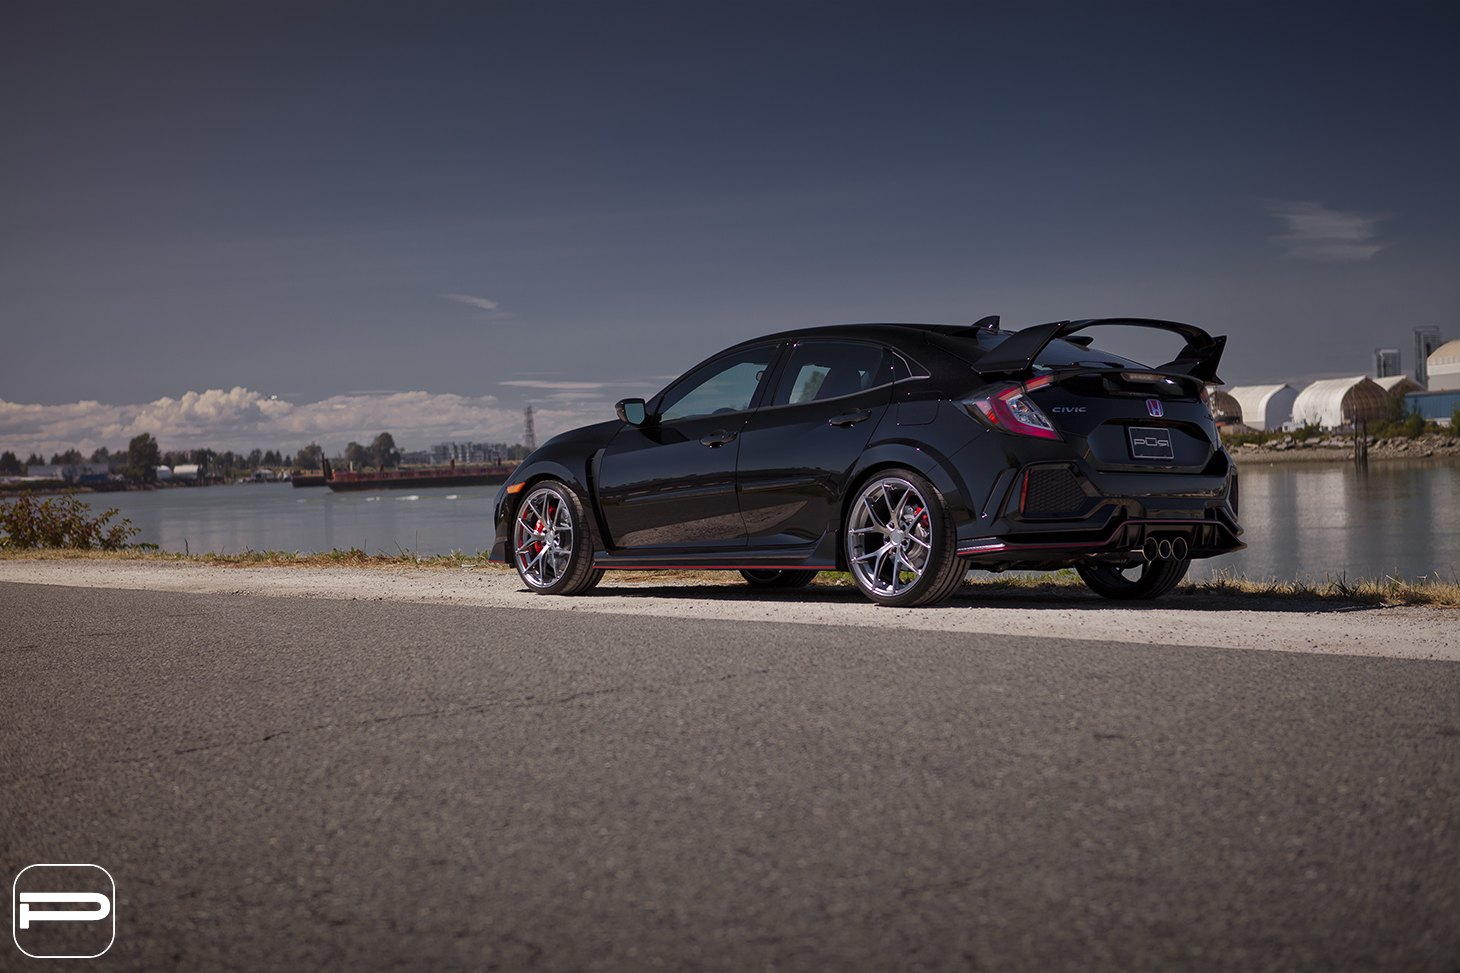 Aftermarket Rear Diffuser on Black Honda Civic - Photo by PUR Wheels